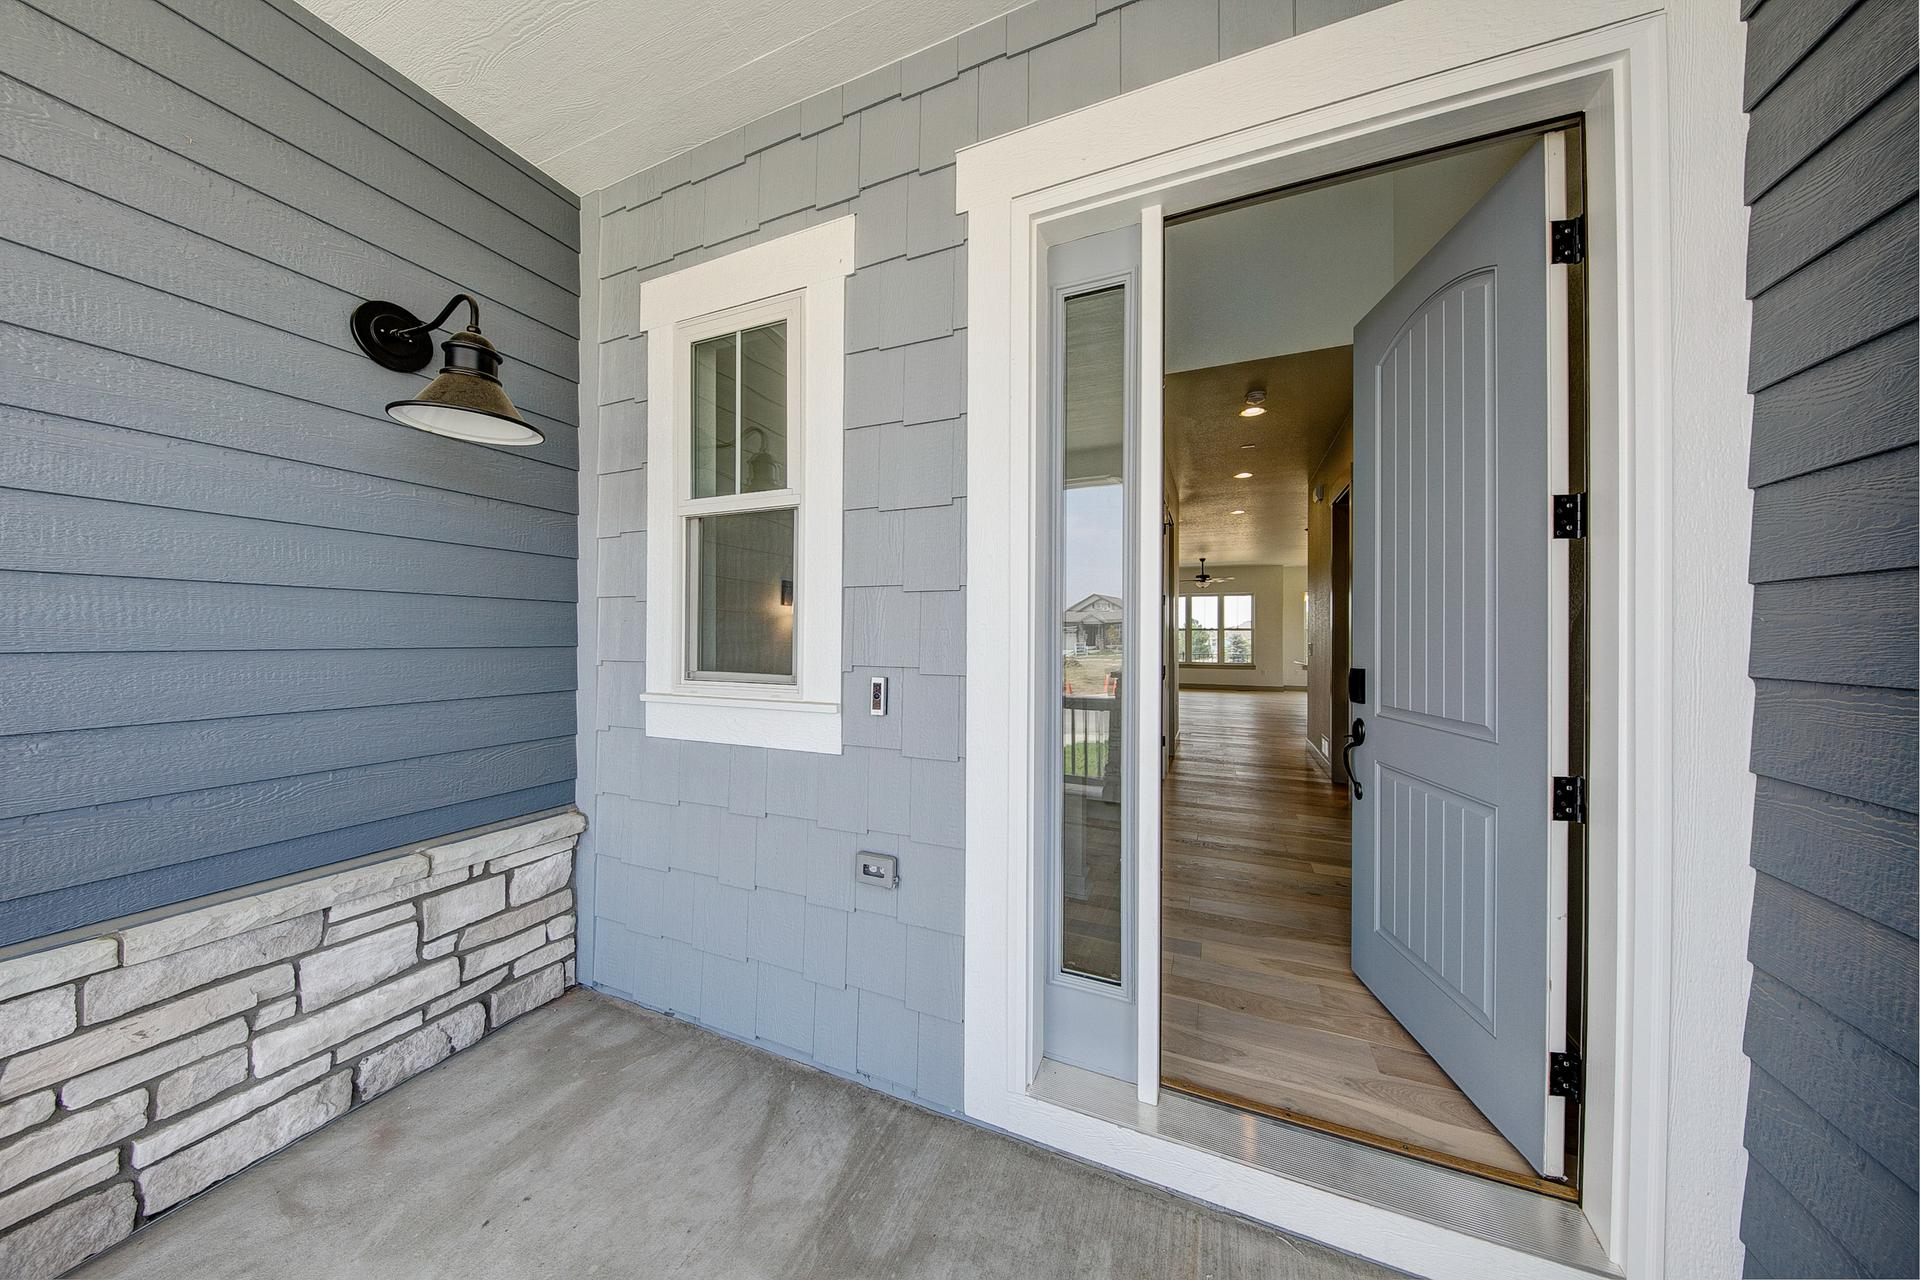 Exterior - Not Actual Home - Finishes Will Vary